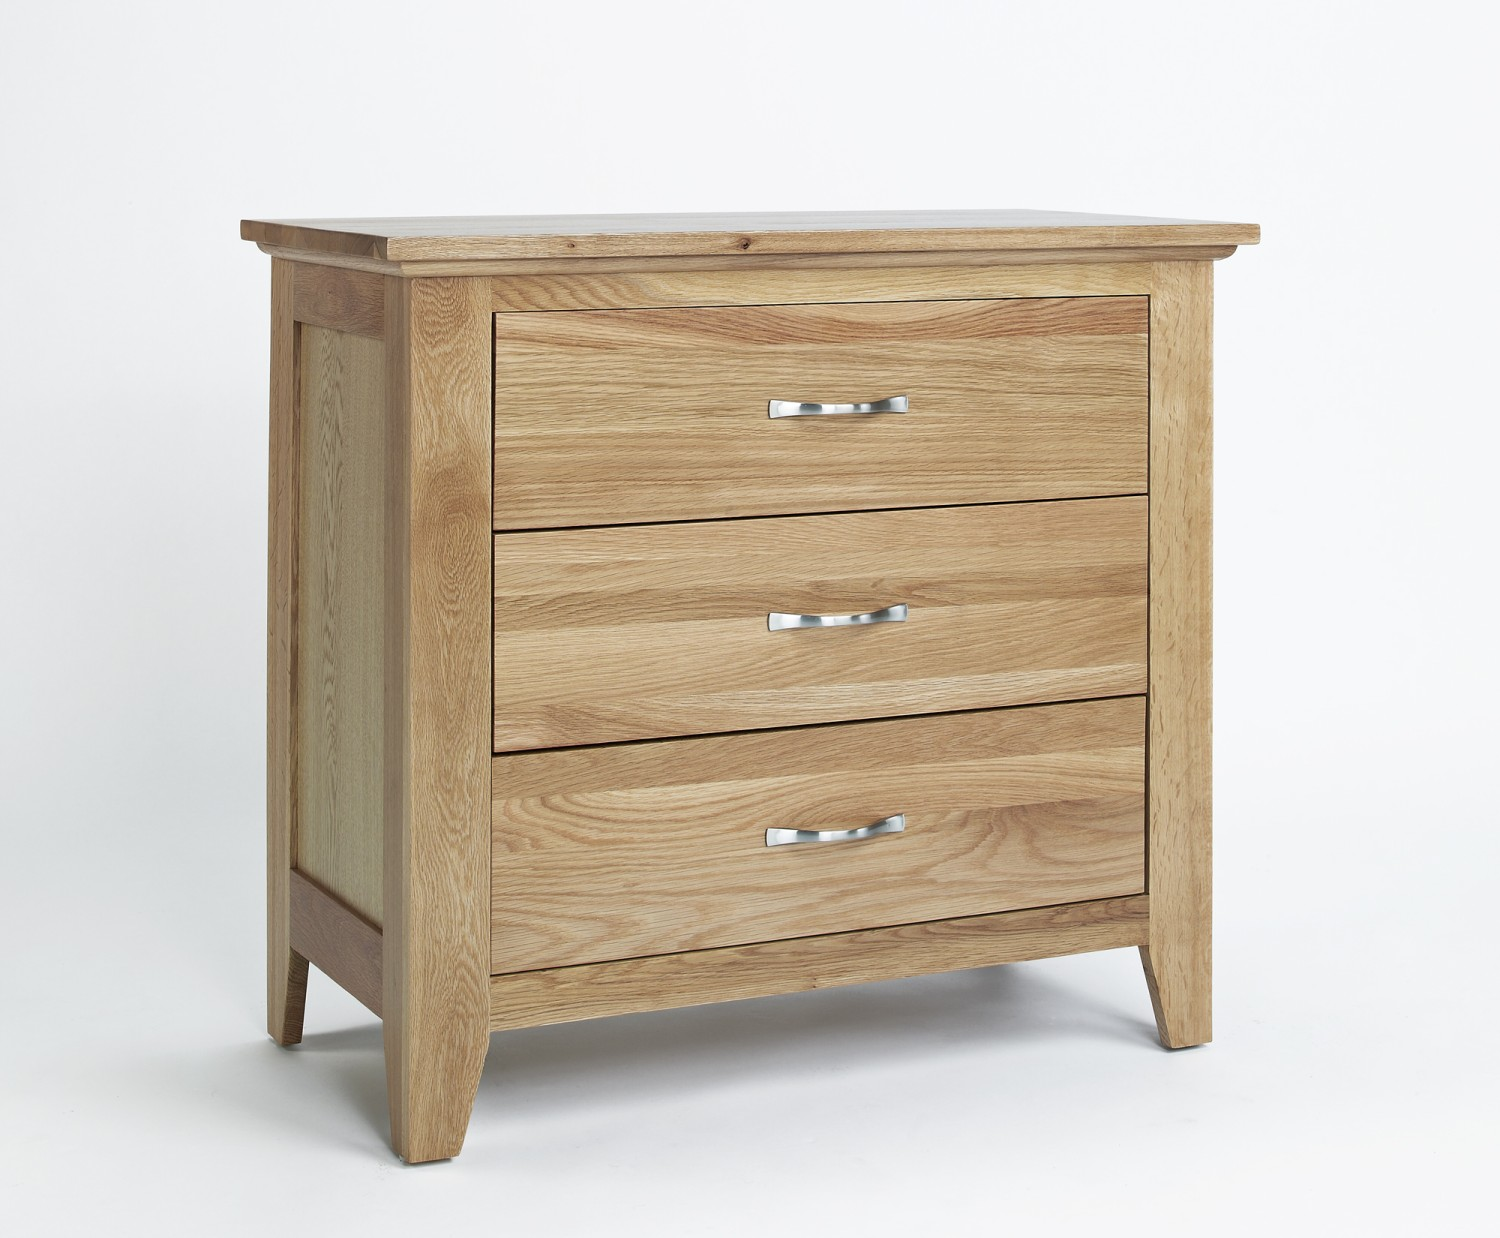 Compton Solid Oak Furniture Three Drawer Bedroom Chest Of Drawers Ebay